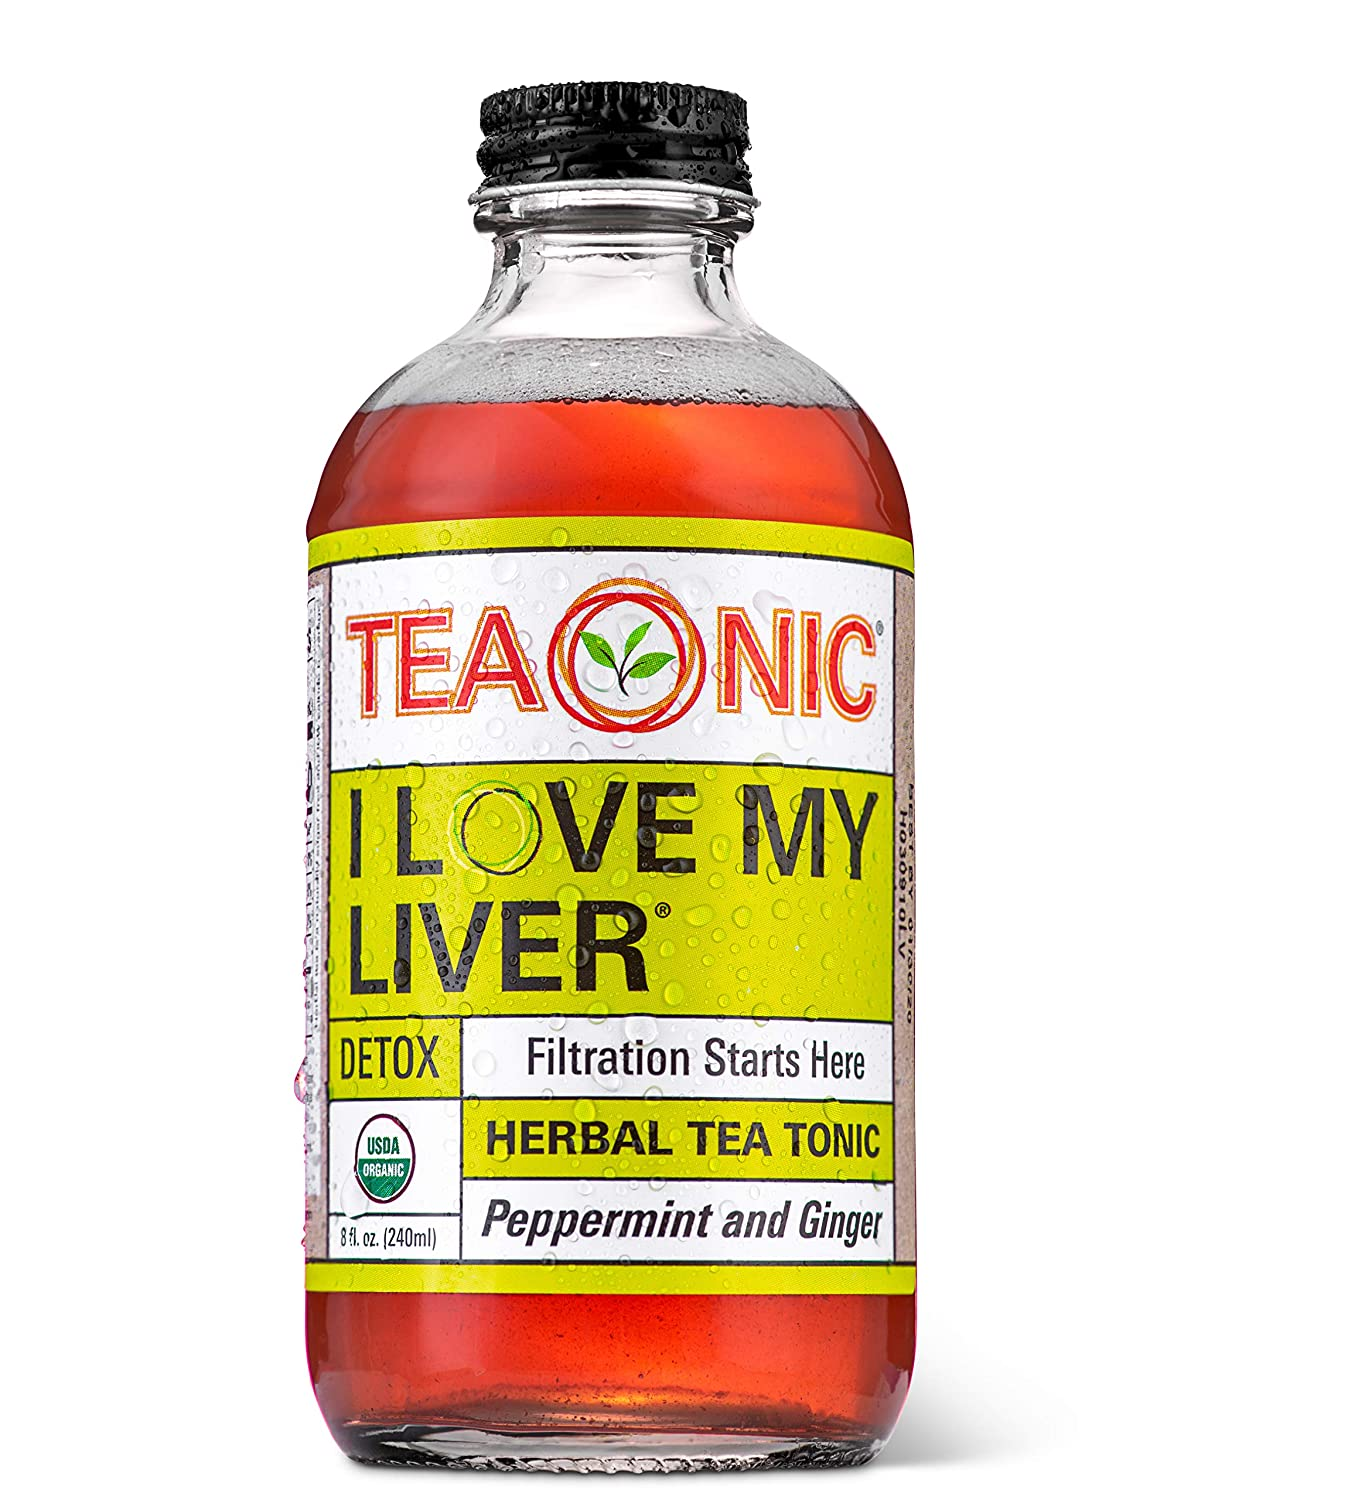 Teaonic I LOVE MY LIVER for Detox Bottled Herbal Tea Supplement, 8oz 12 Pack